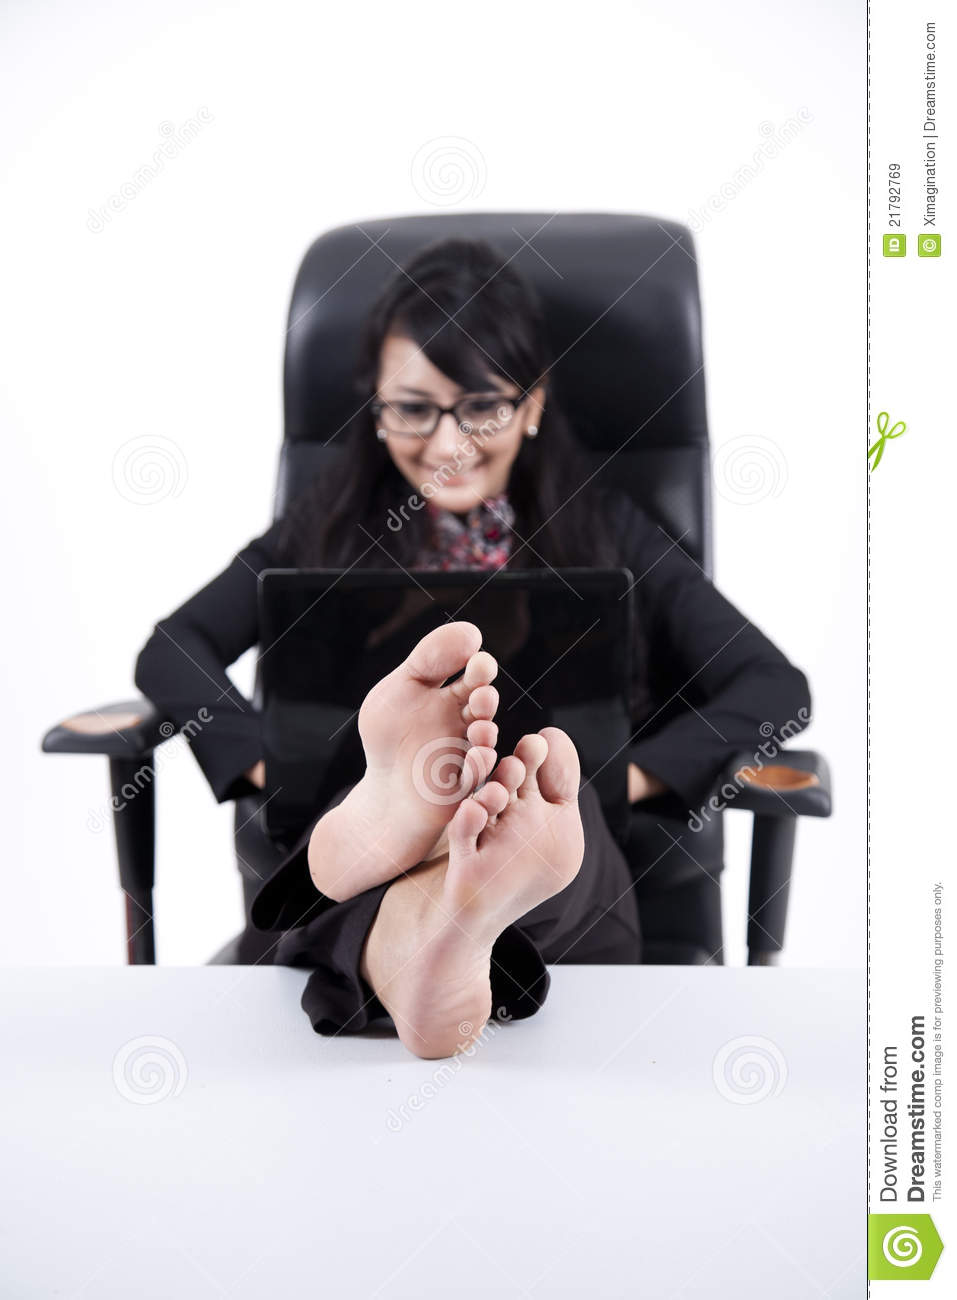 Business Woman With Feet Up On A Table Royalty Free Stock